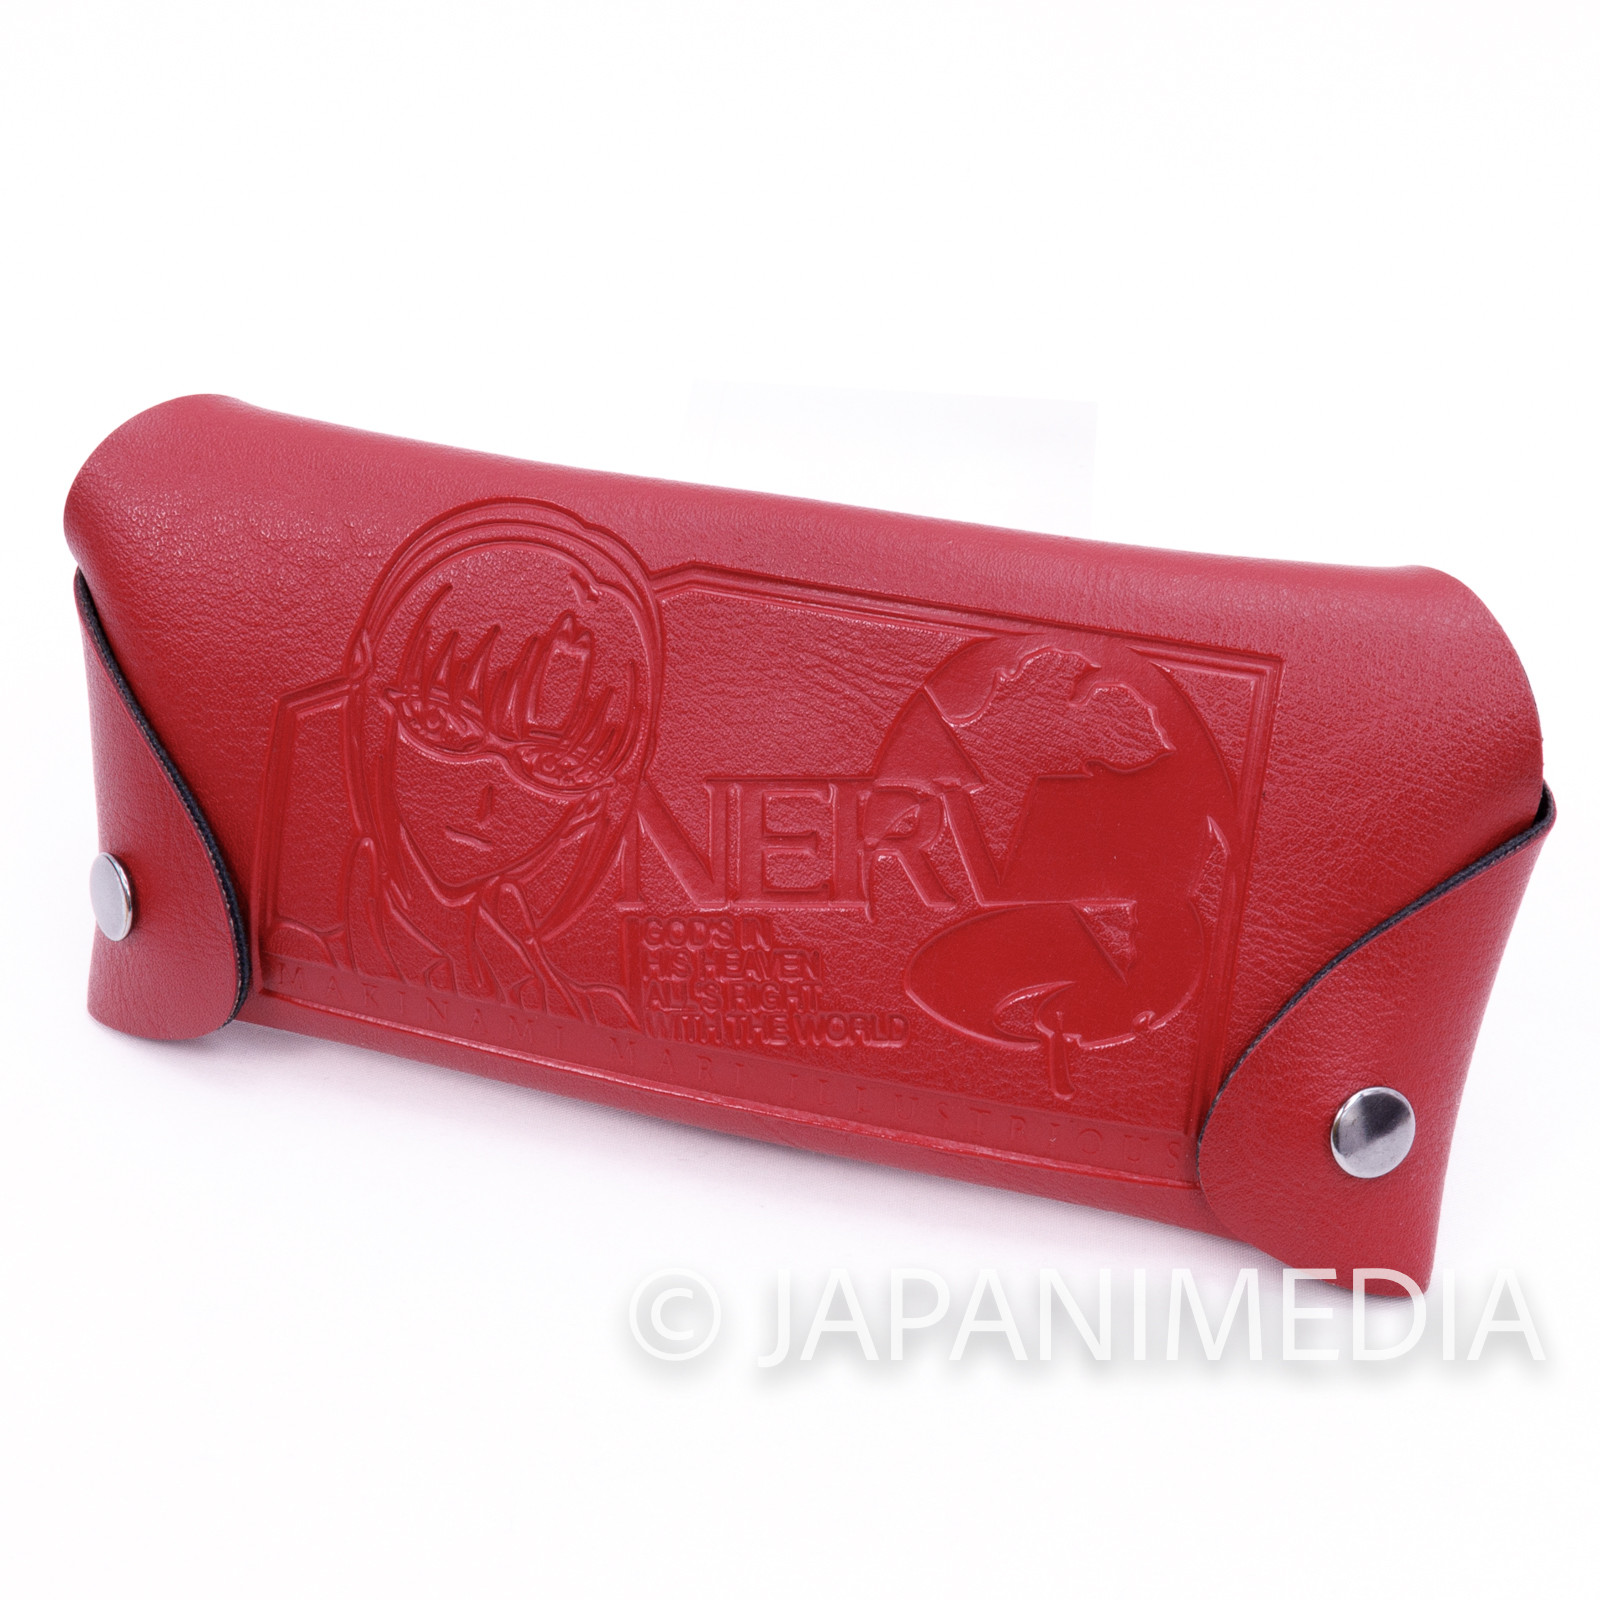 Evangelion Mari Illustrious Synthetic Leather Glasses Case JAPAN ANIME MANGA